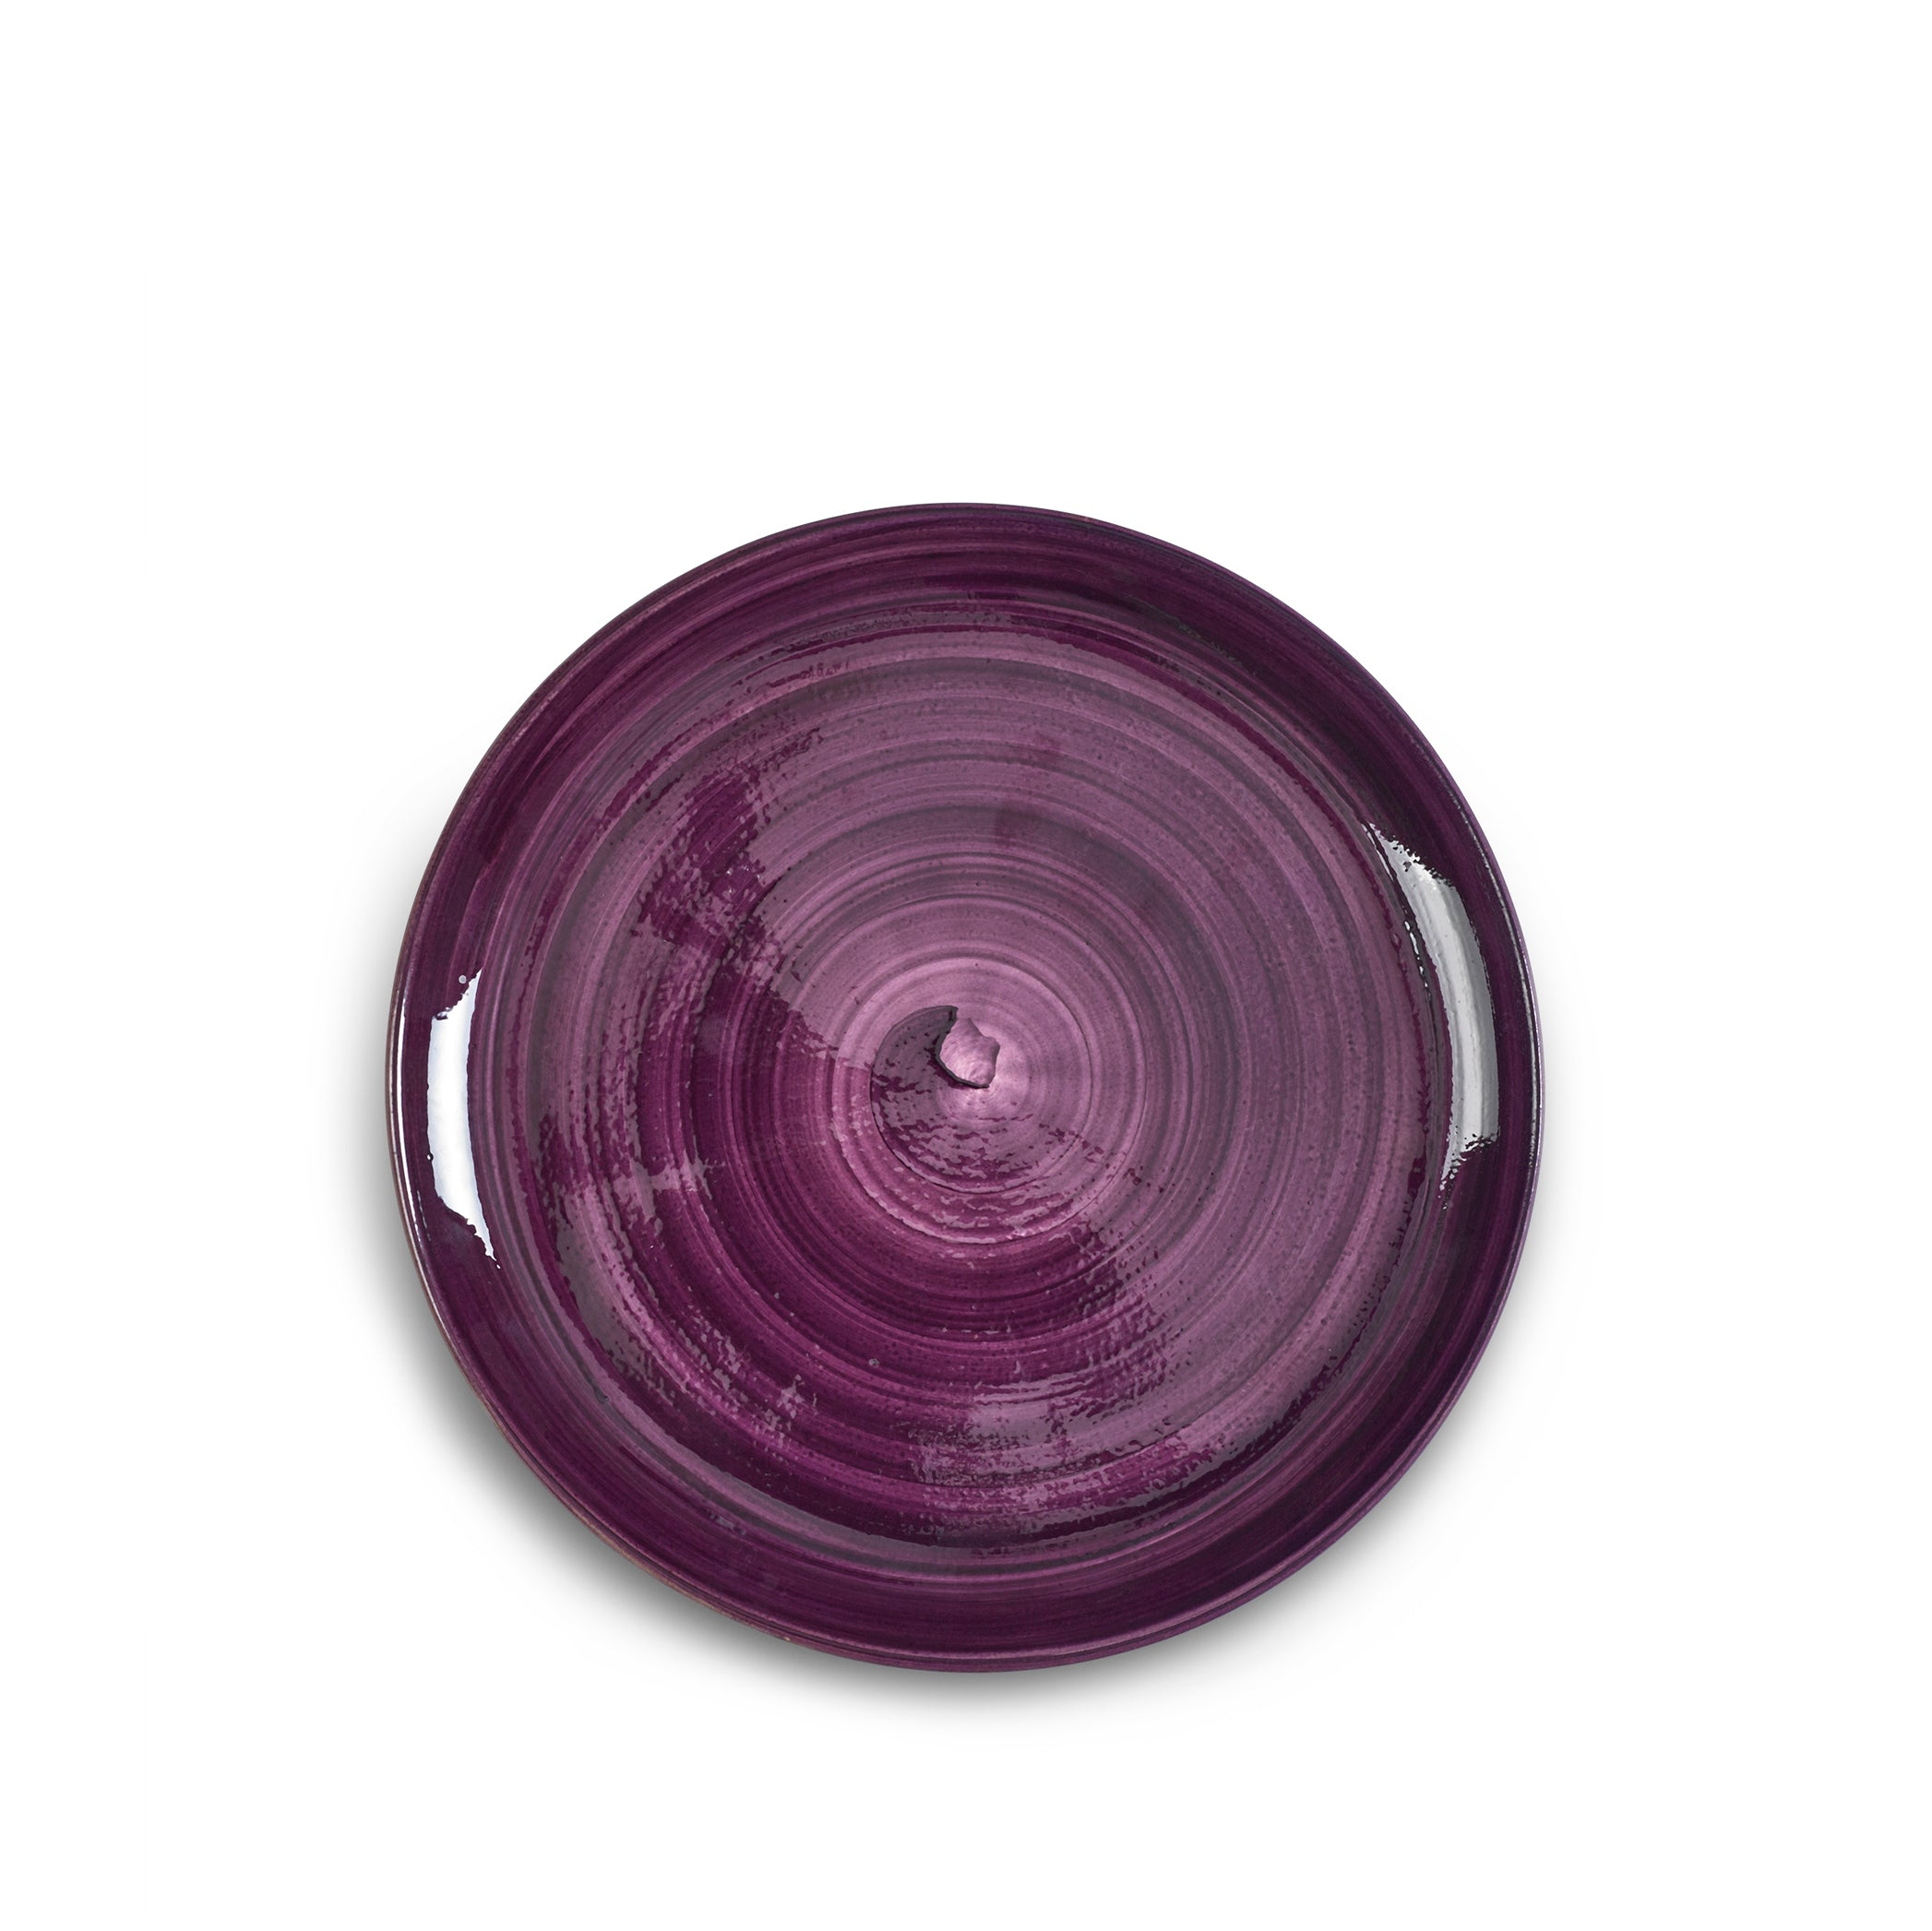 "S&B ""La Couronne"" 26cm Ceramic Dinner Plate in Purple"